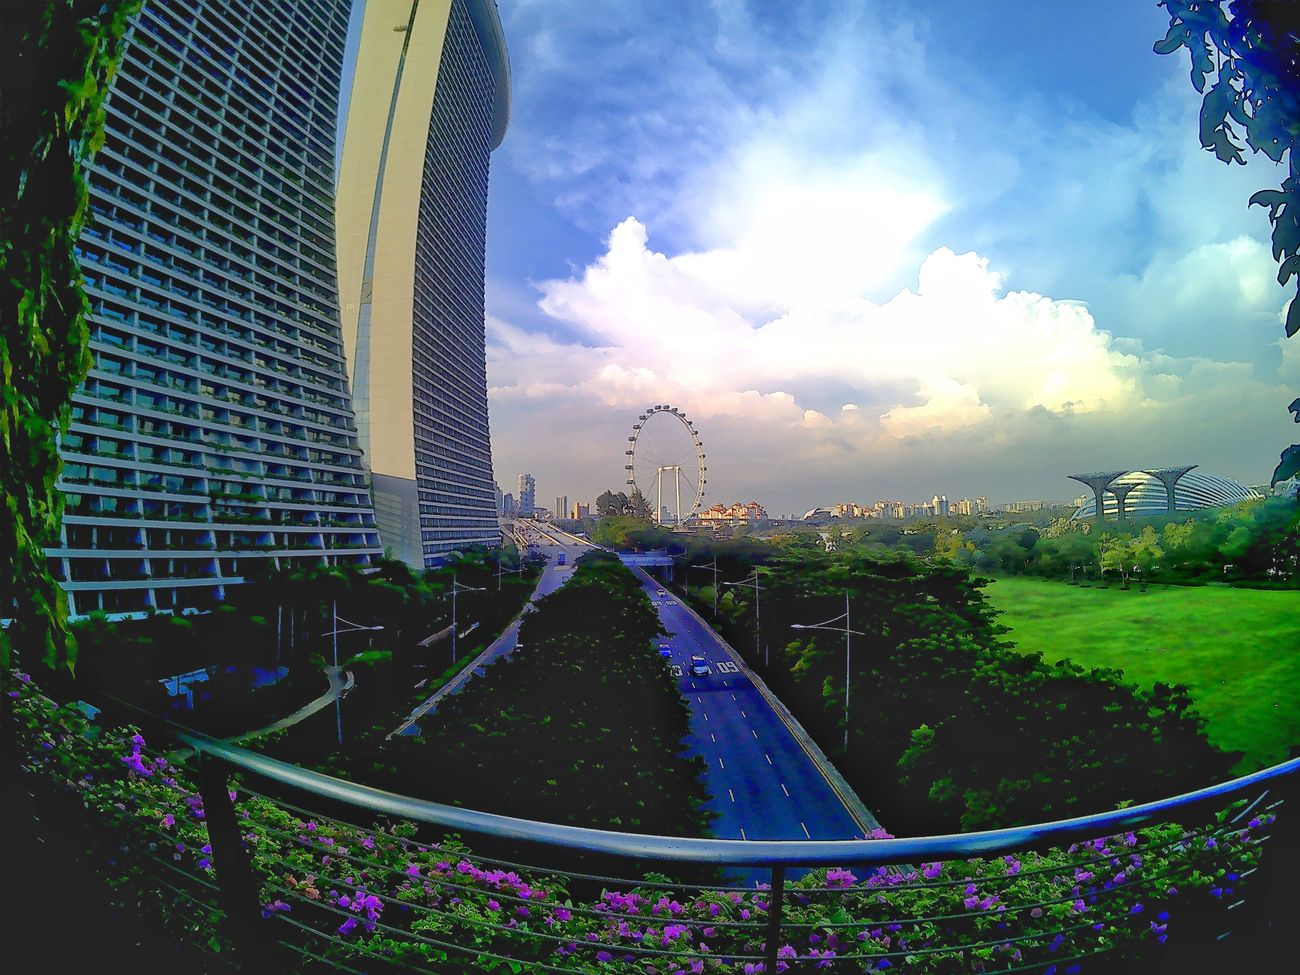 Cityscape Sky Cloud - Sky No People Architecture Outdoors Nature Travel Travelphotography Wide Shot Bpro5alpha Singapore Landscape Marina Bay Sands Urban Skyline Travel Photography Wide Open Spaces Scenery Blue Buildings & Sky Singapore City Singapore View Travel Destinations Singapore Flyer